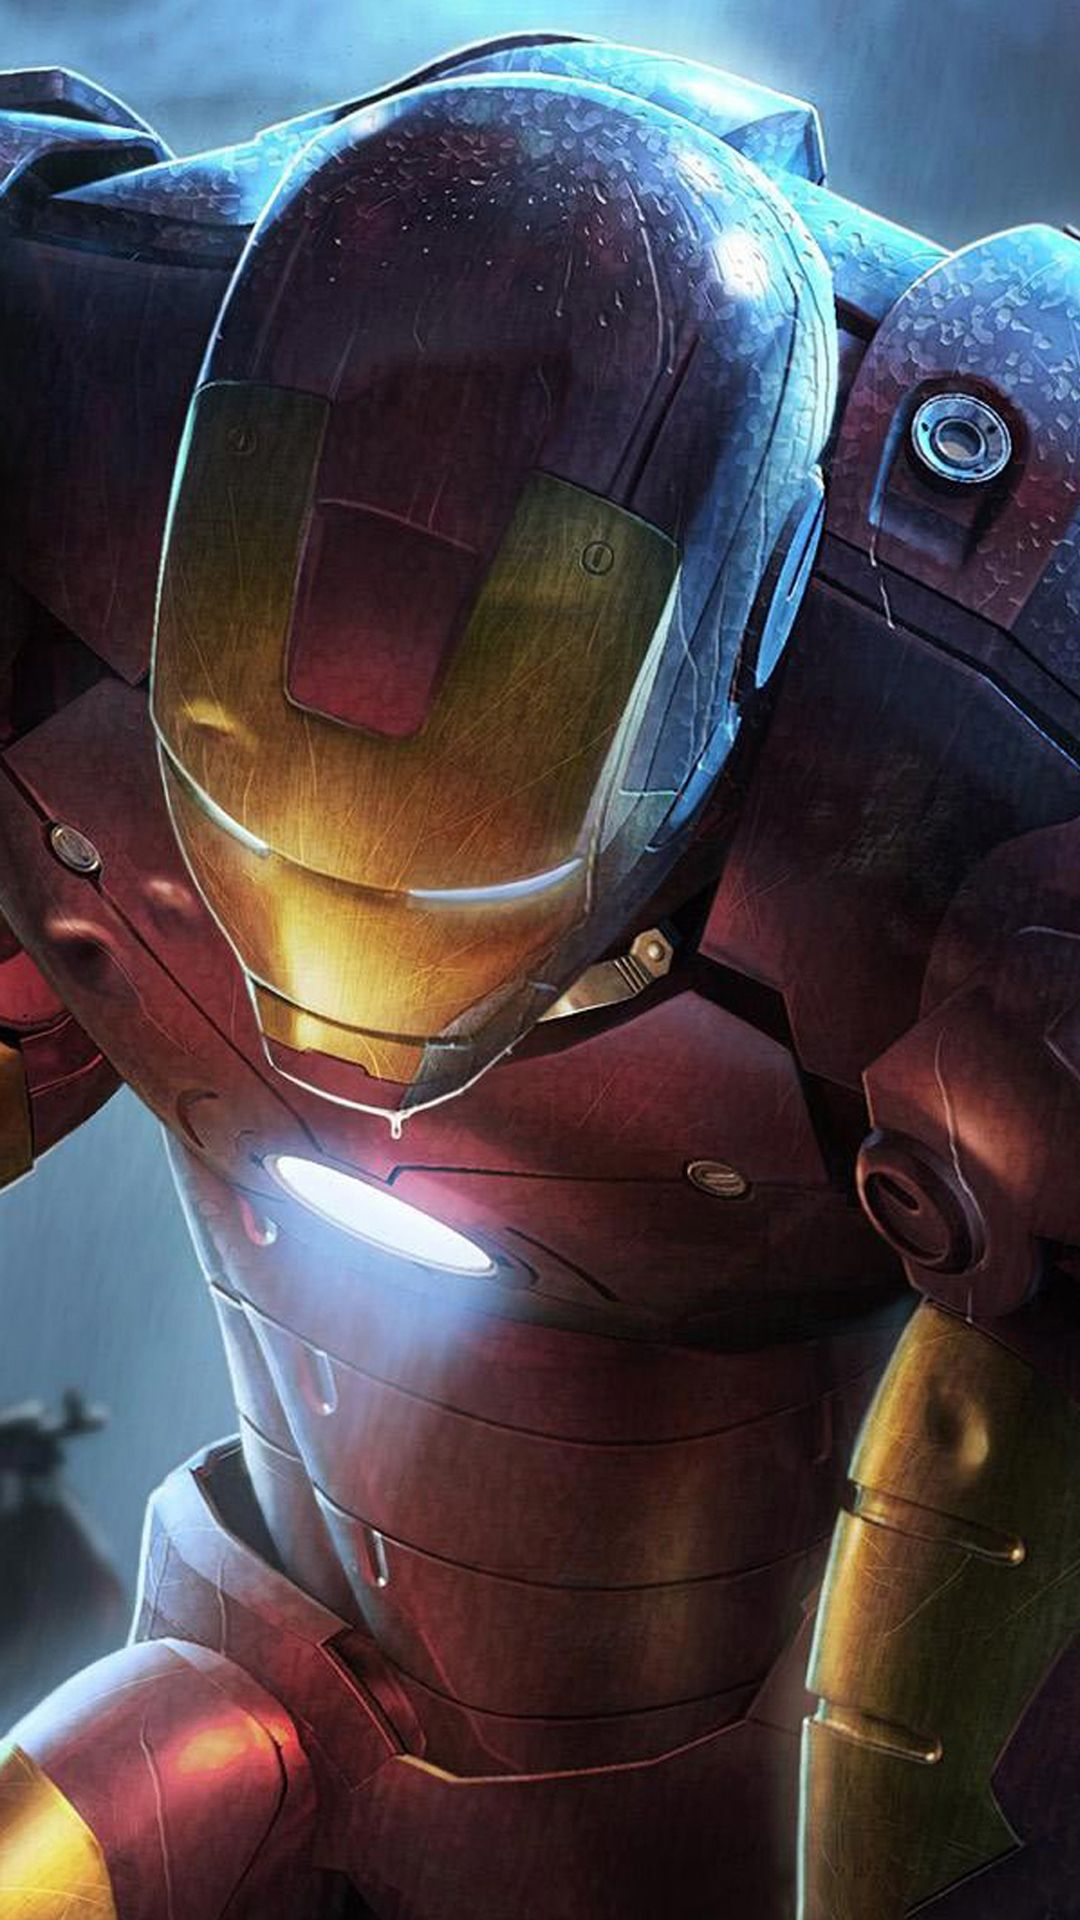 Iron Man Illustration Android Wallpaper アメコミ ヒーロー、アベンジャー